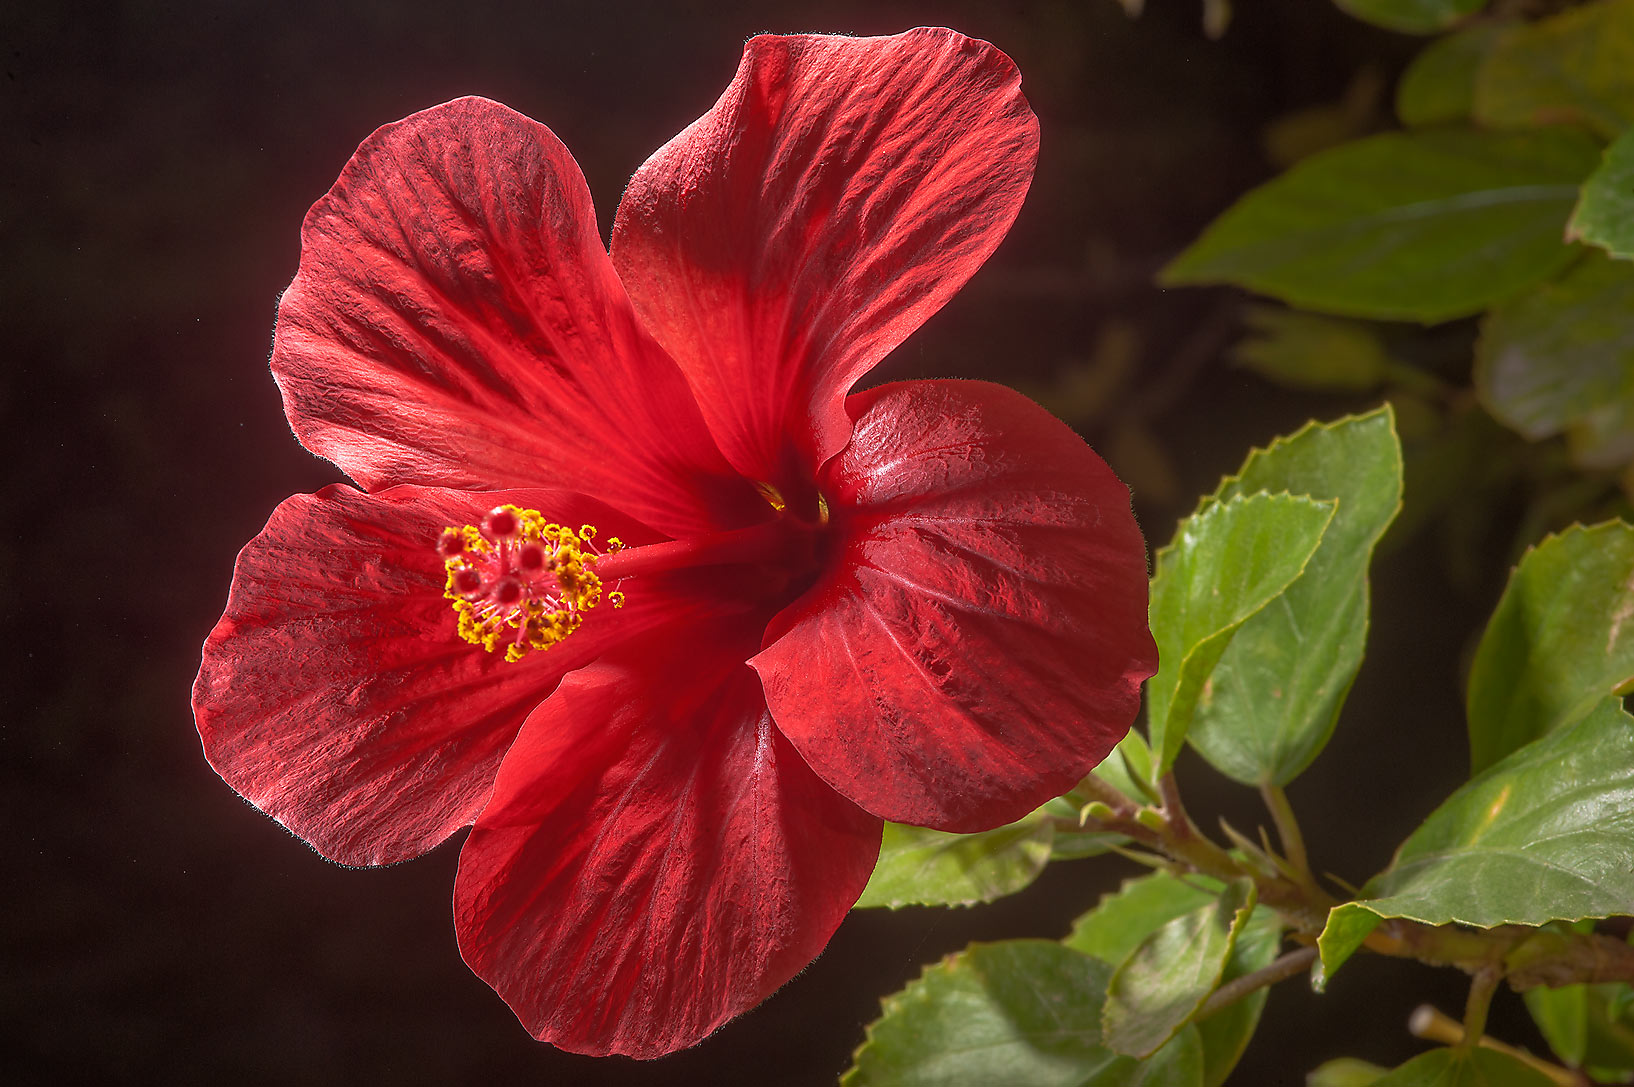 Red flower of China rose (Hibiscus rosa-sinensis...City Park. Ruwais, Northern Qatar